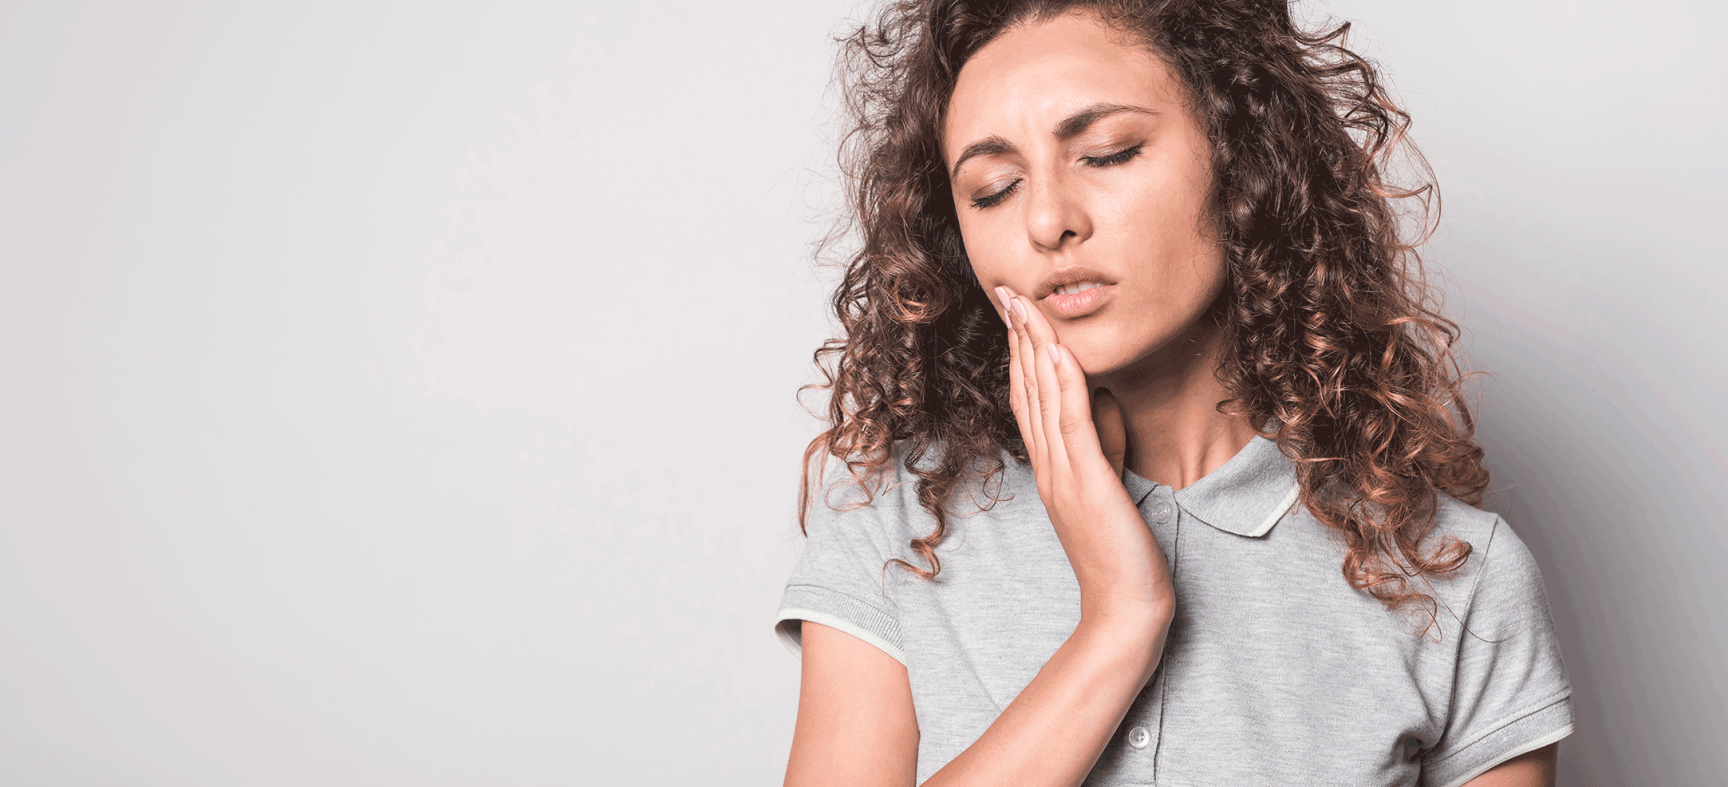 What is happening to my teeth? Tooth sensitivity explained